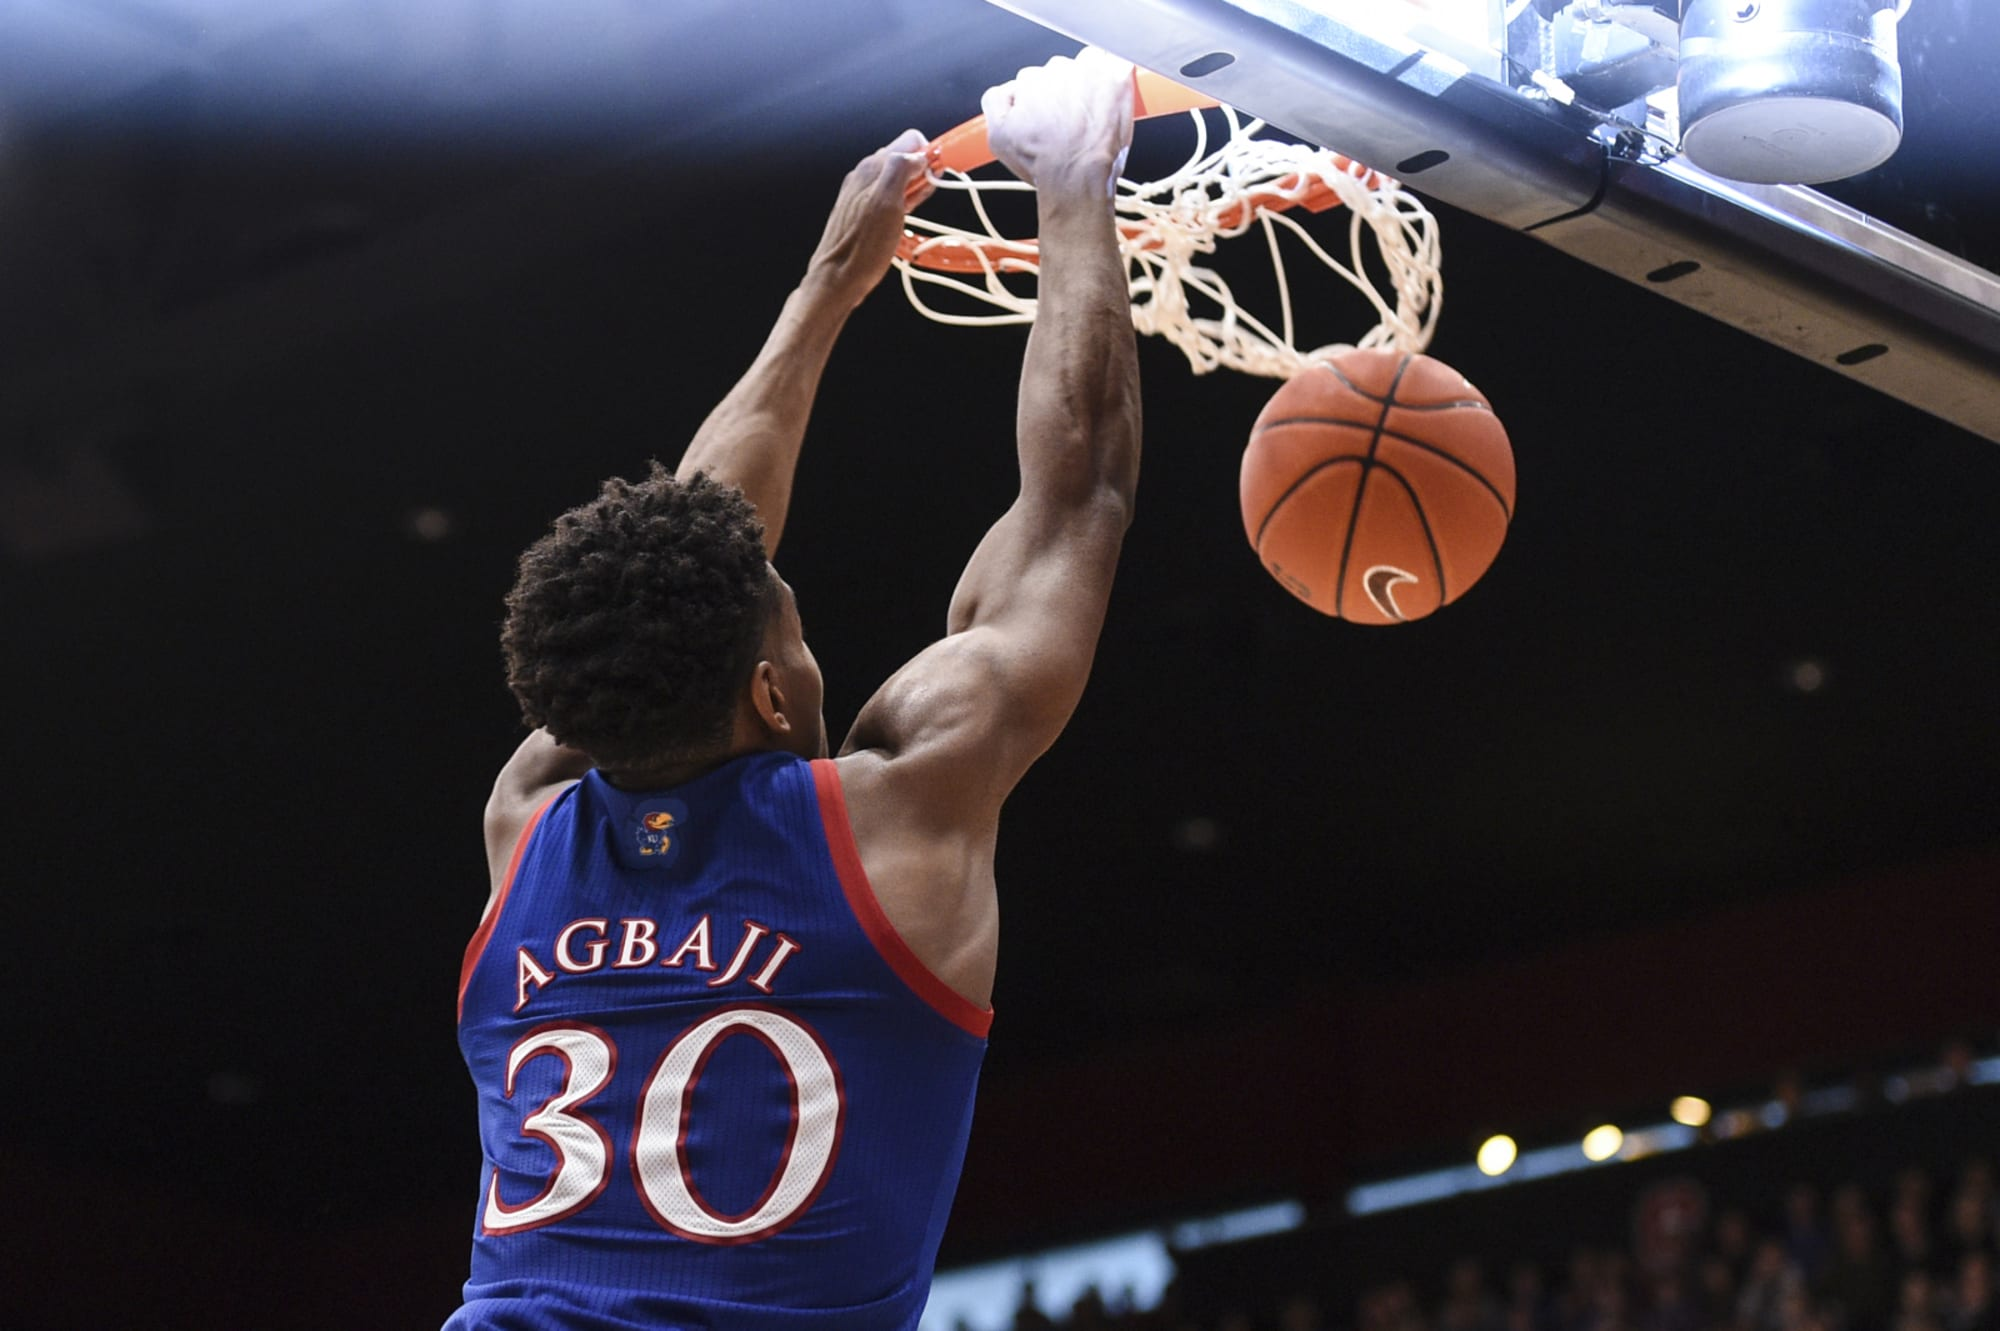 College Basketball Conference Rankings Kansas Has Big 12 On Top Acc Bottoming Out